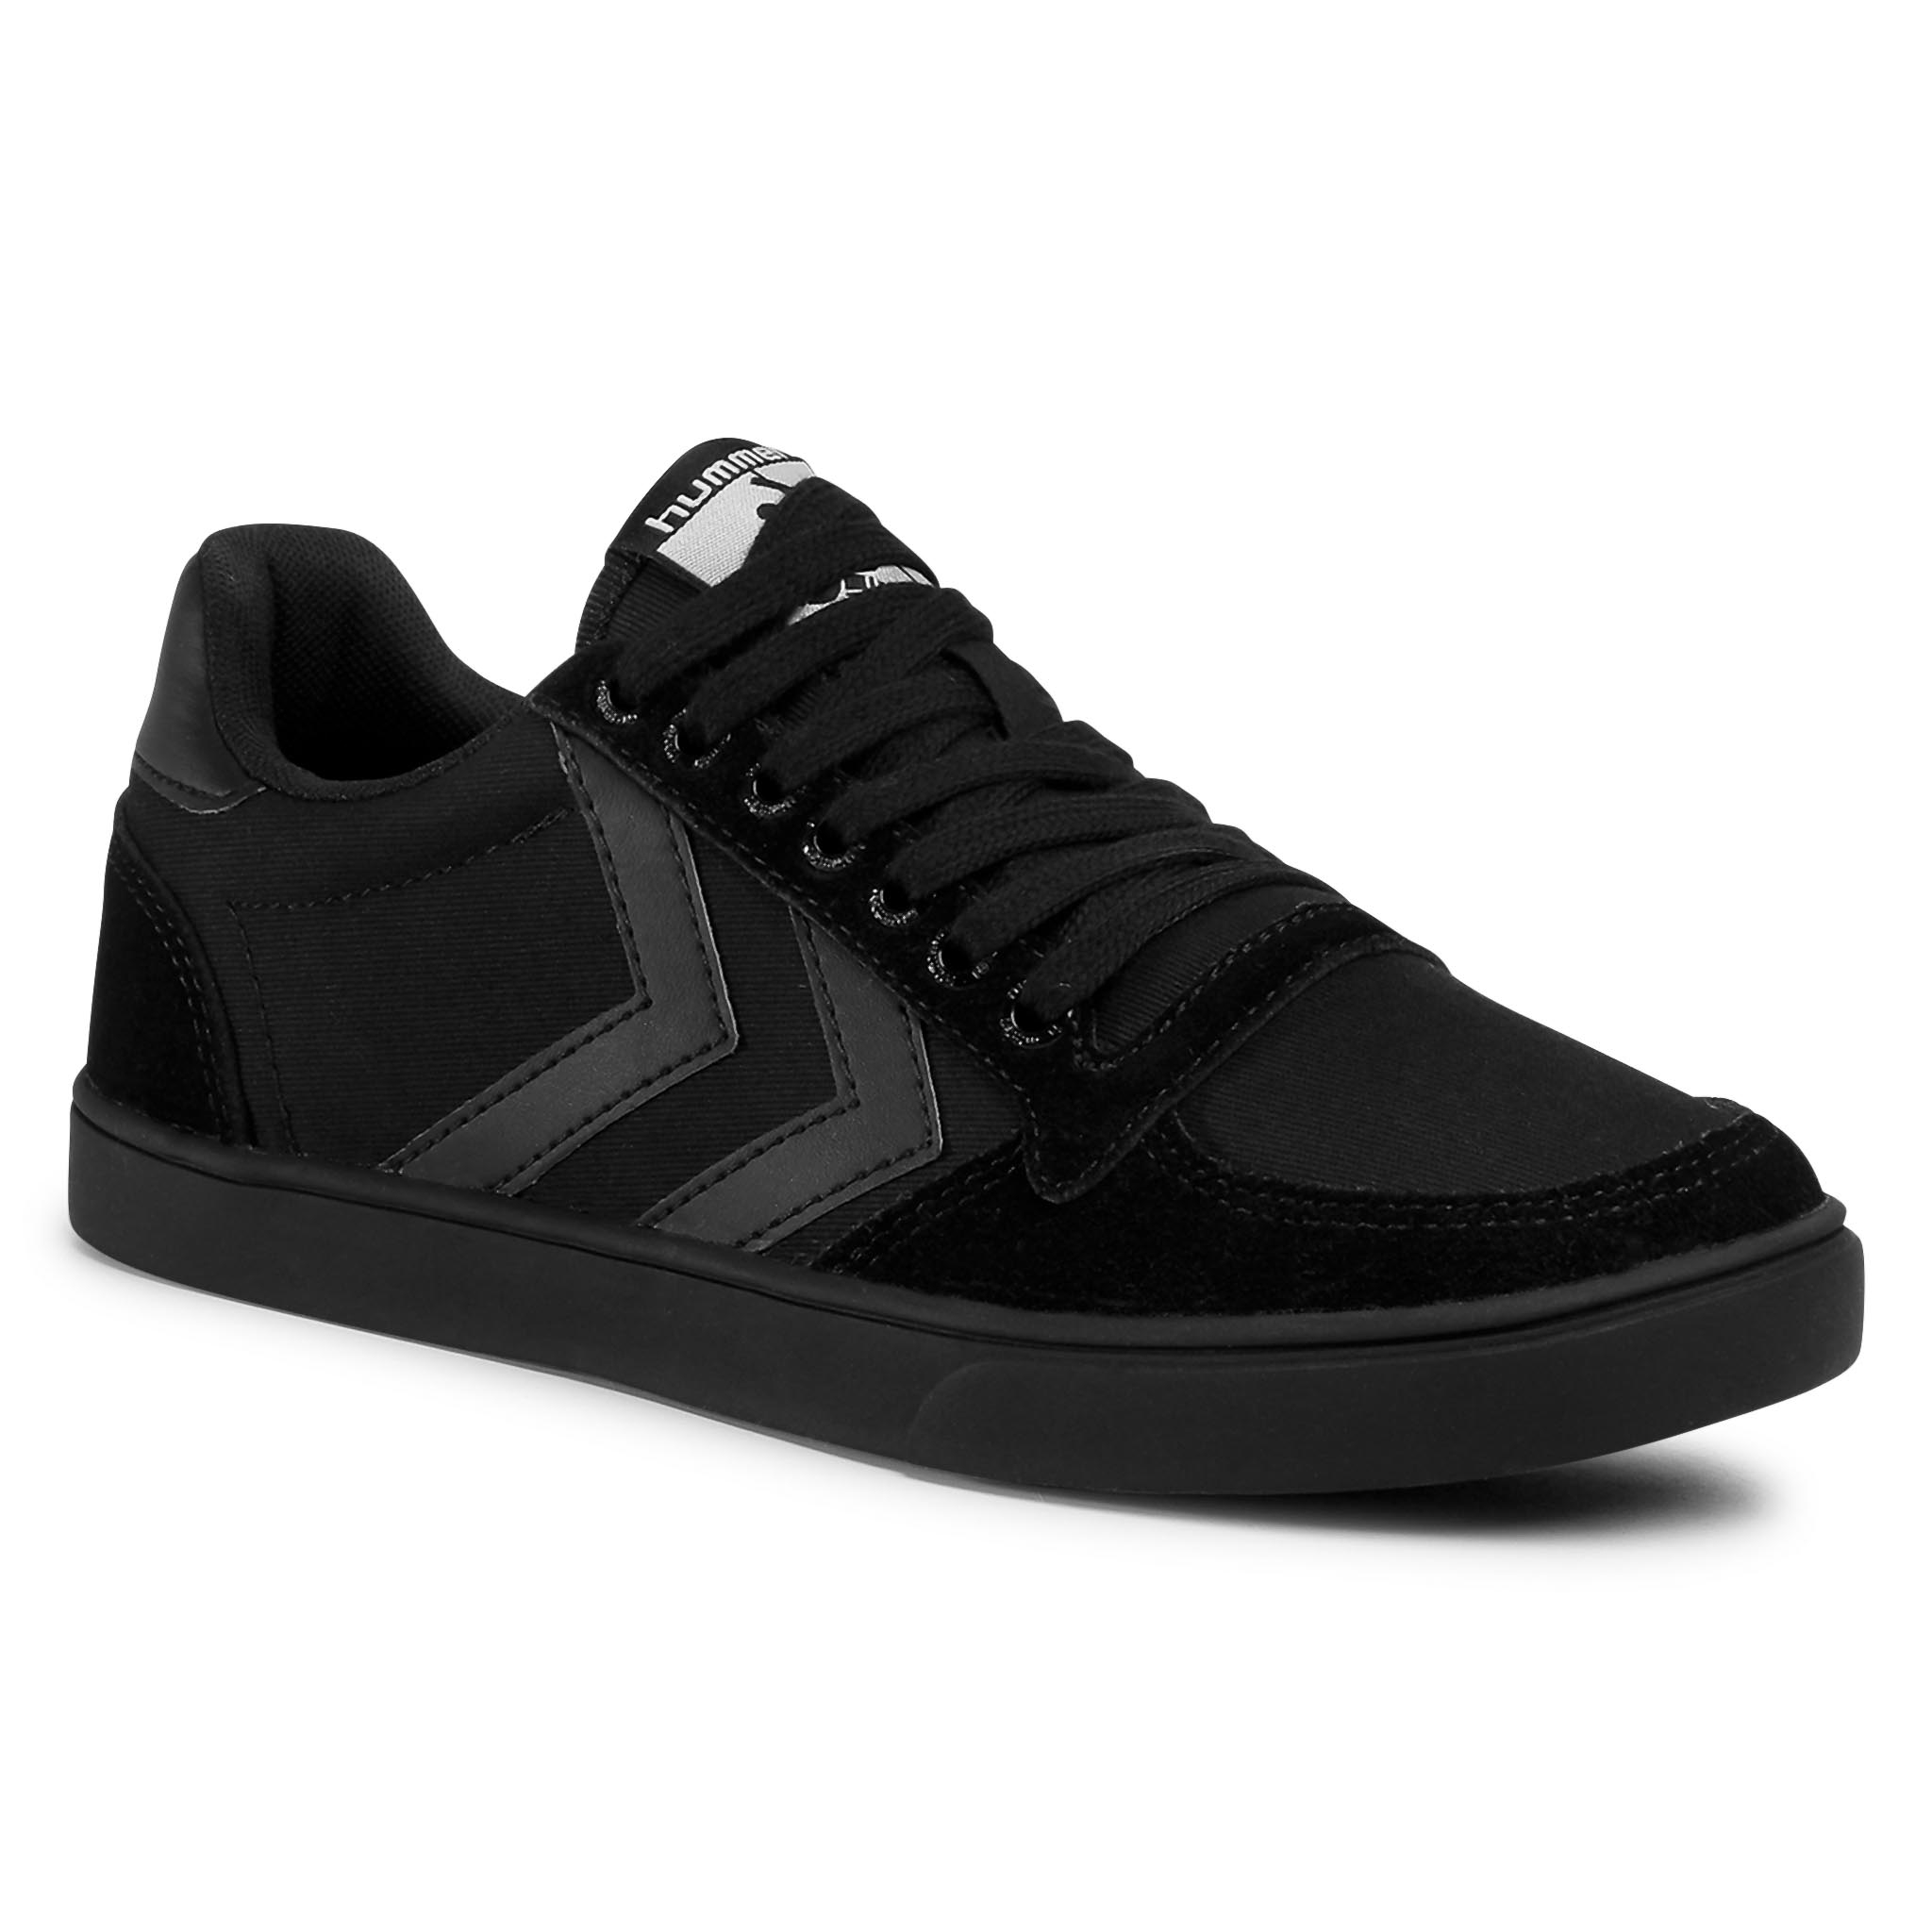 Sneakers HUMMEL - Slimmer Sradil Tonal Low 64466-2001 Black